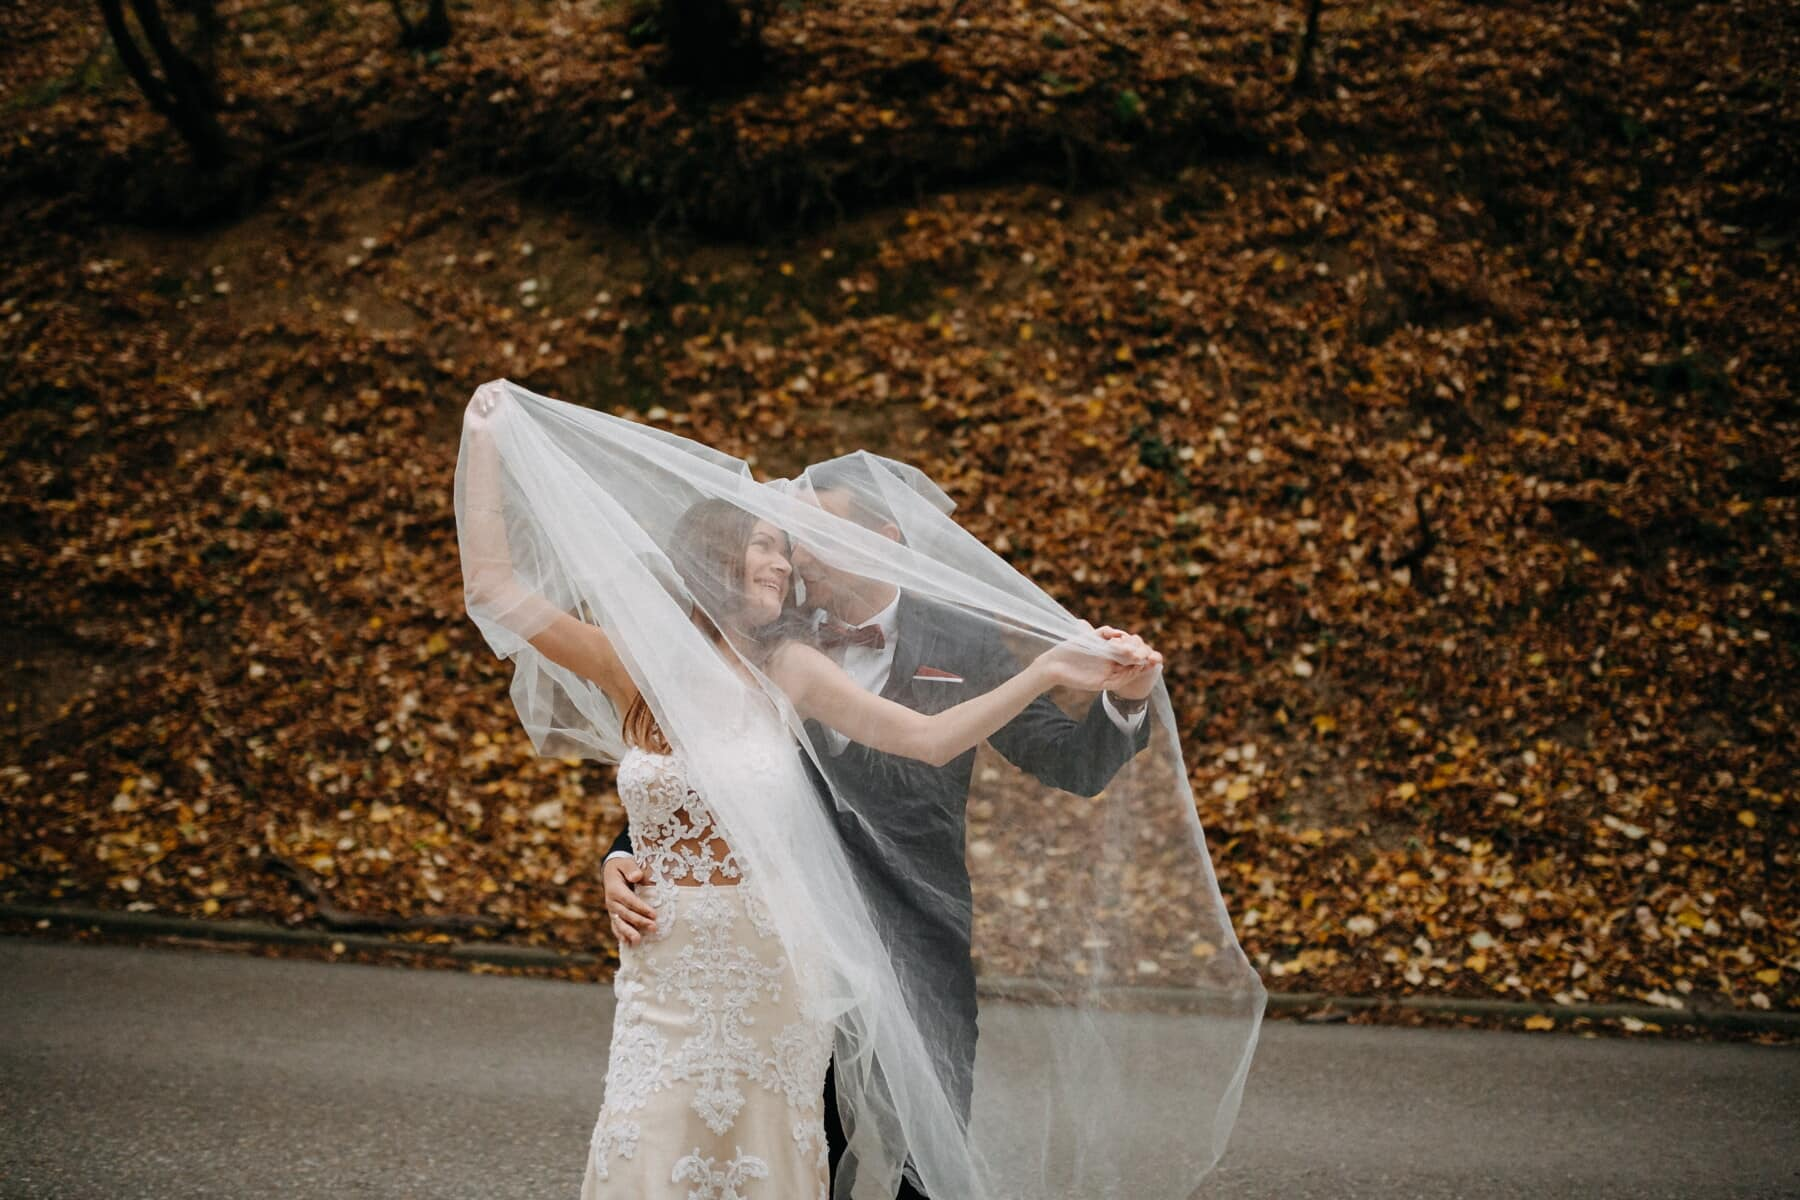 just married, autumn season, road, asphalt, container, bride, plastic bag, wedding, girl, woman